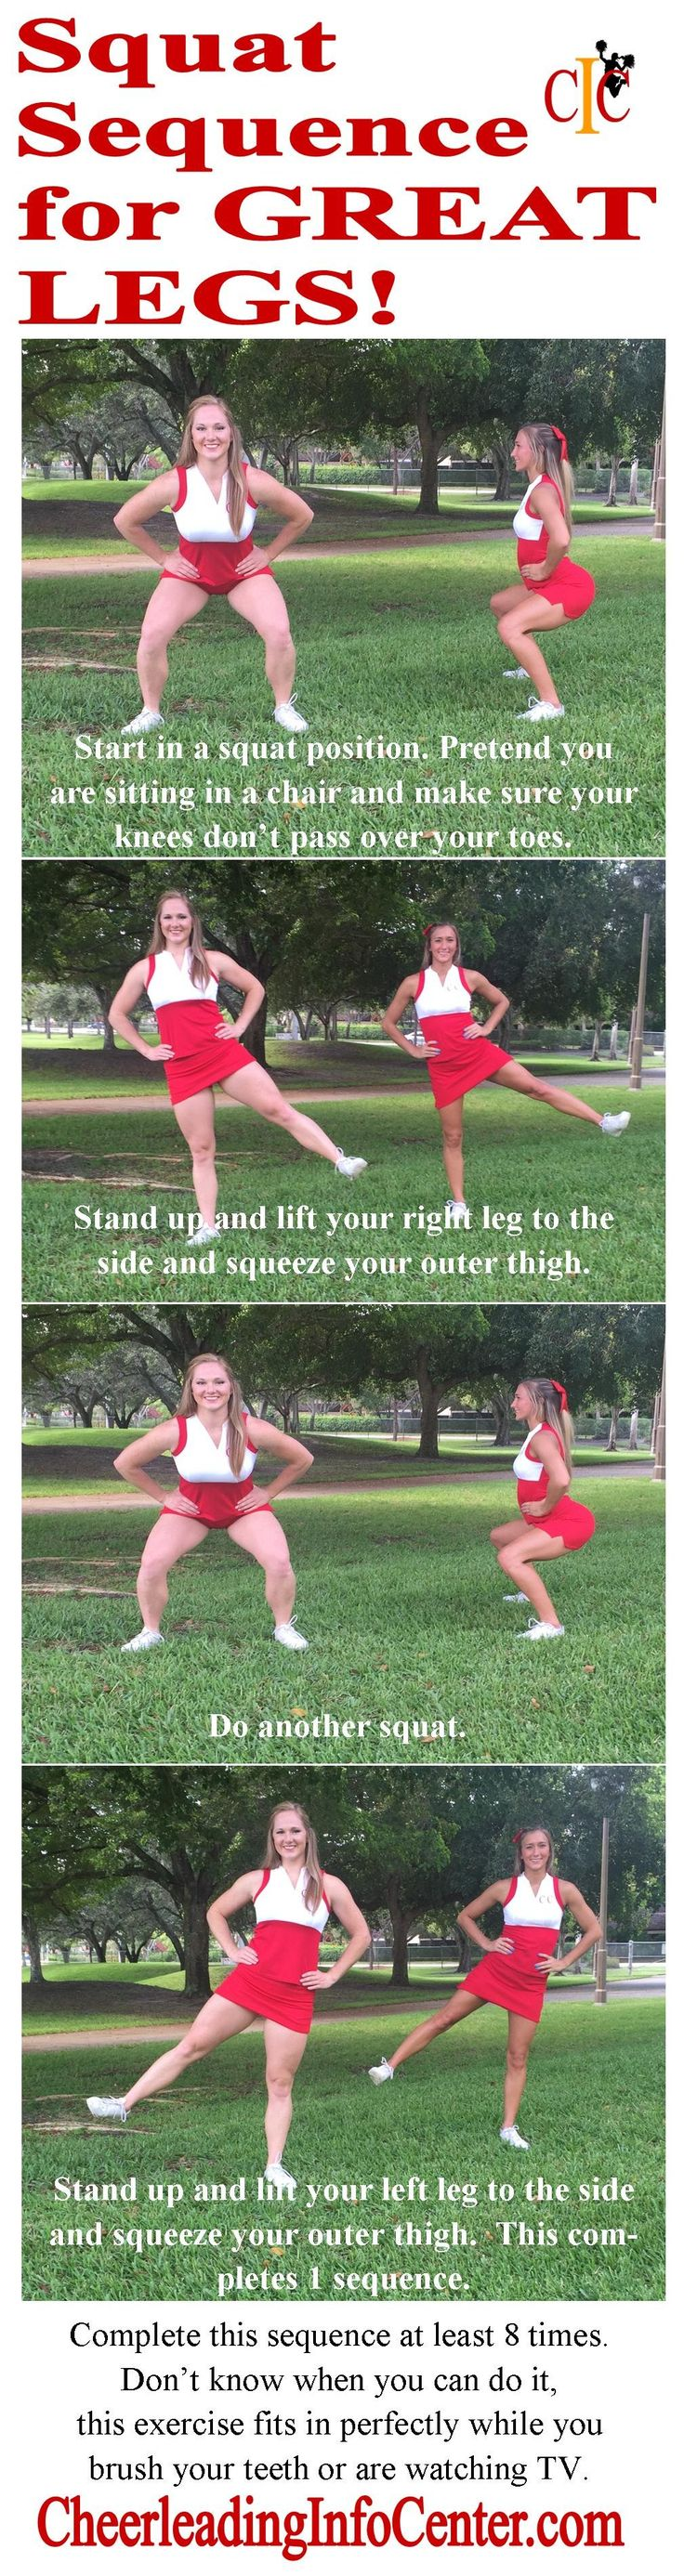 Do you want some great exercises for your legs? Check out this squat sequence that you can do while watching TV or brushing your teeth! For more great cheerleading tips, check out CheerleadingInfoCenter.com